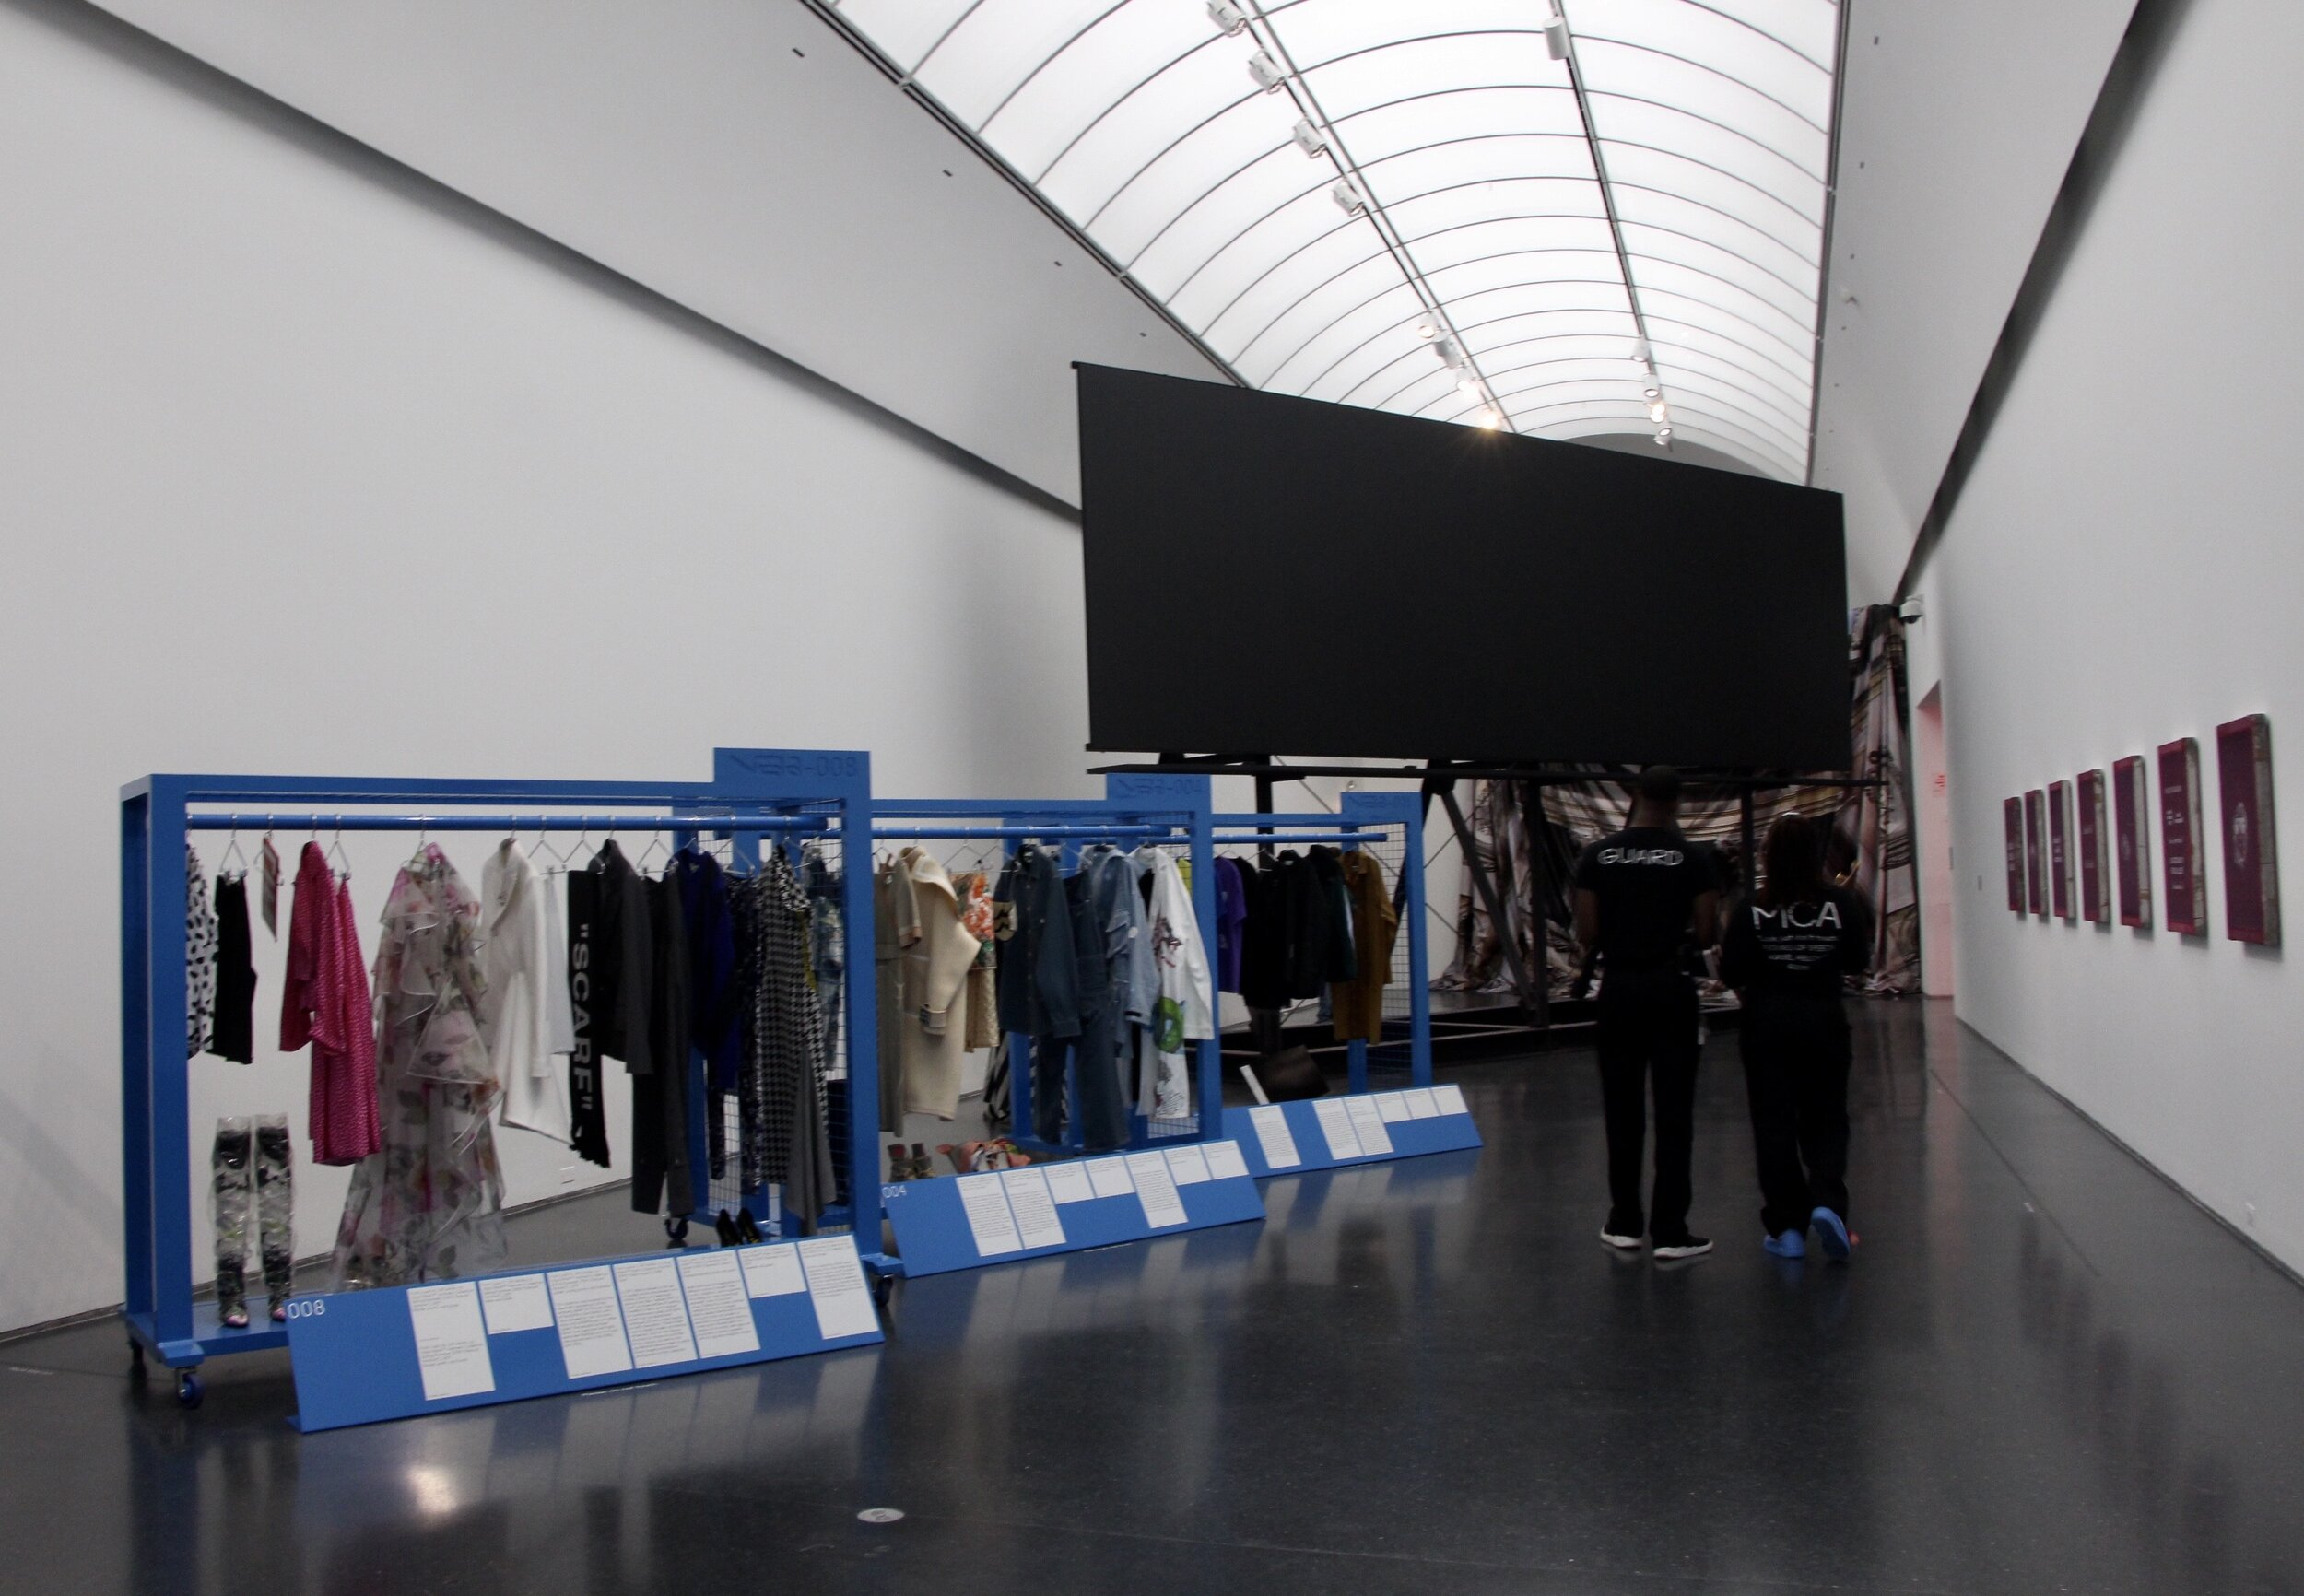 Inside Chicago's Museum of Contemporary Art, seven rooms helped showcase Virgil Abloh's 'Figures of Speech' exhibit. At the end of one room, azure blue racks with 'Off-White' and Louis Vuitton garments and an all-black billboard were on display.